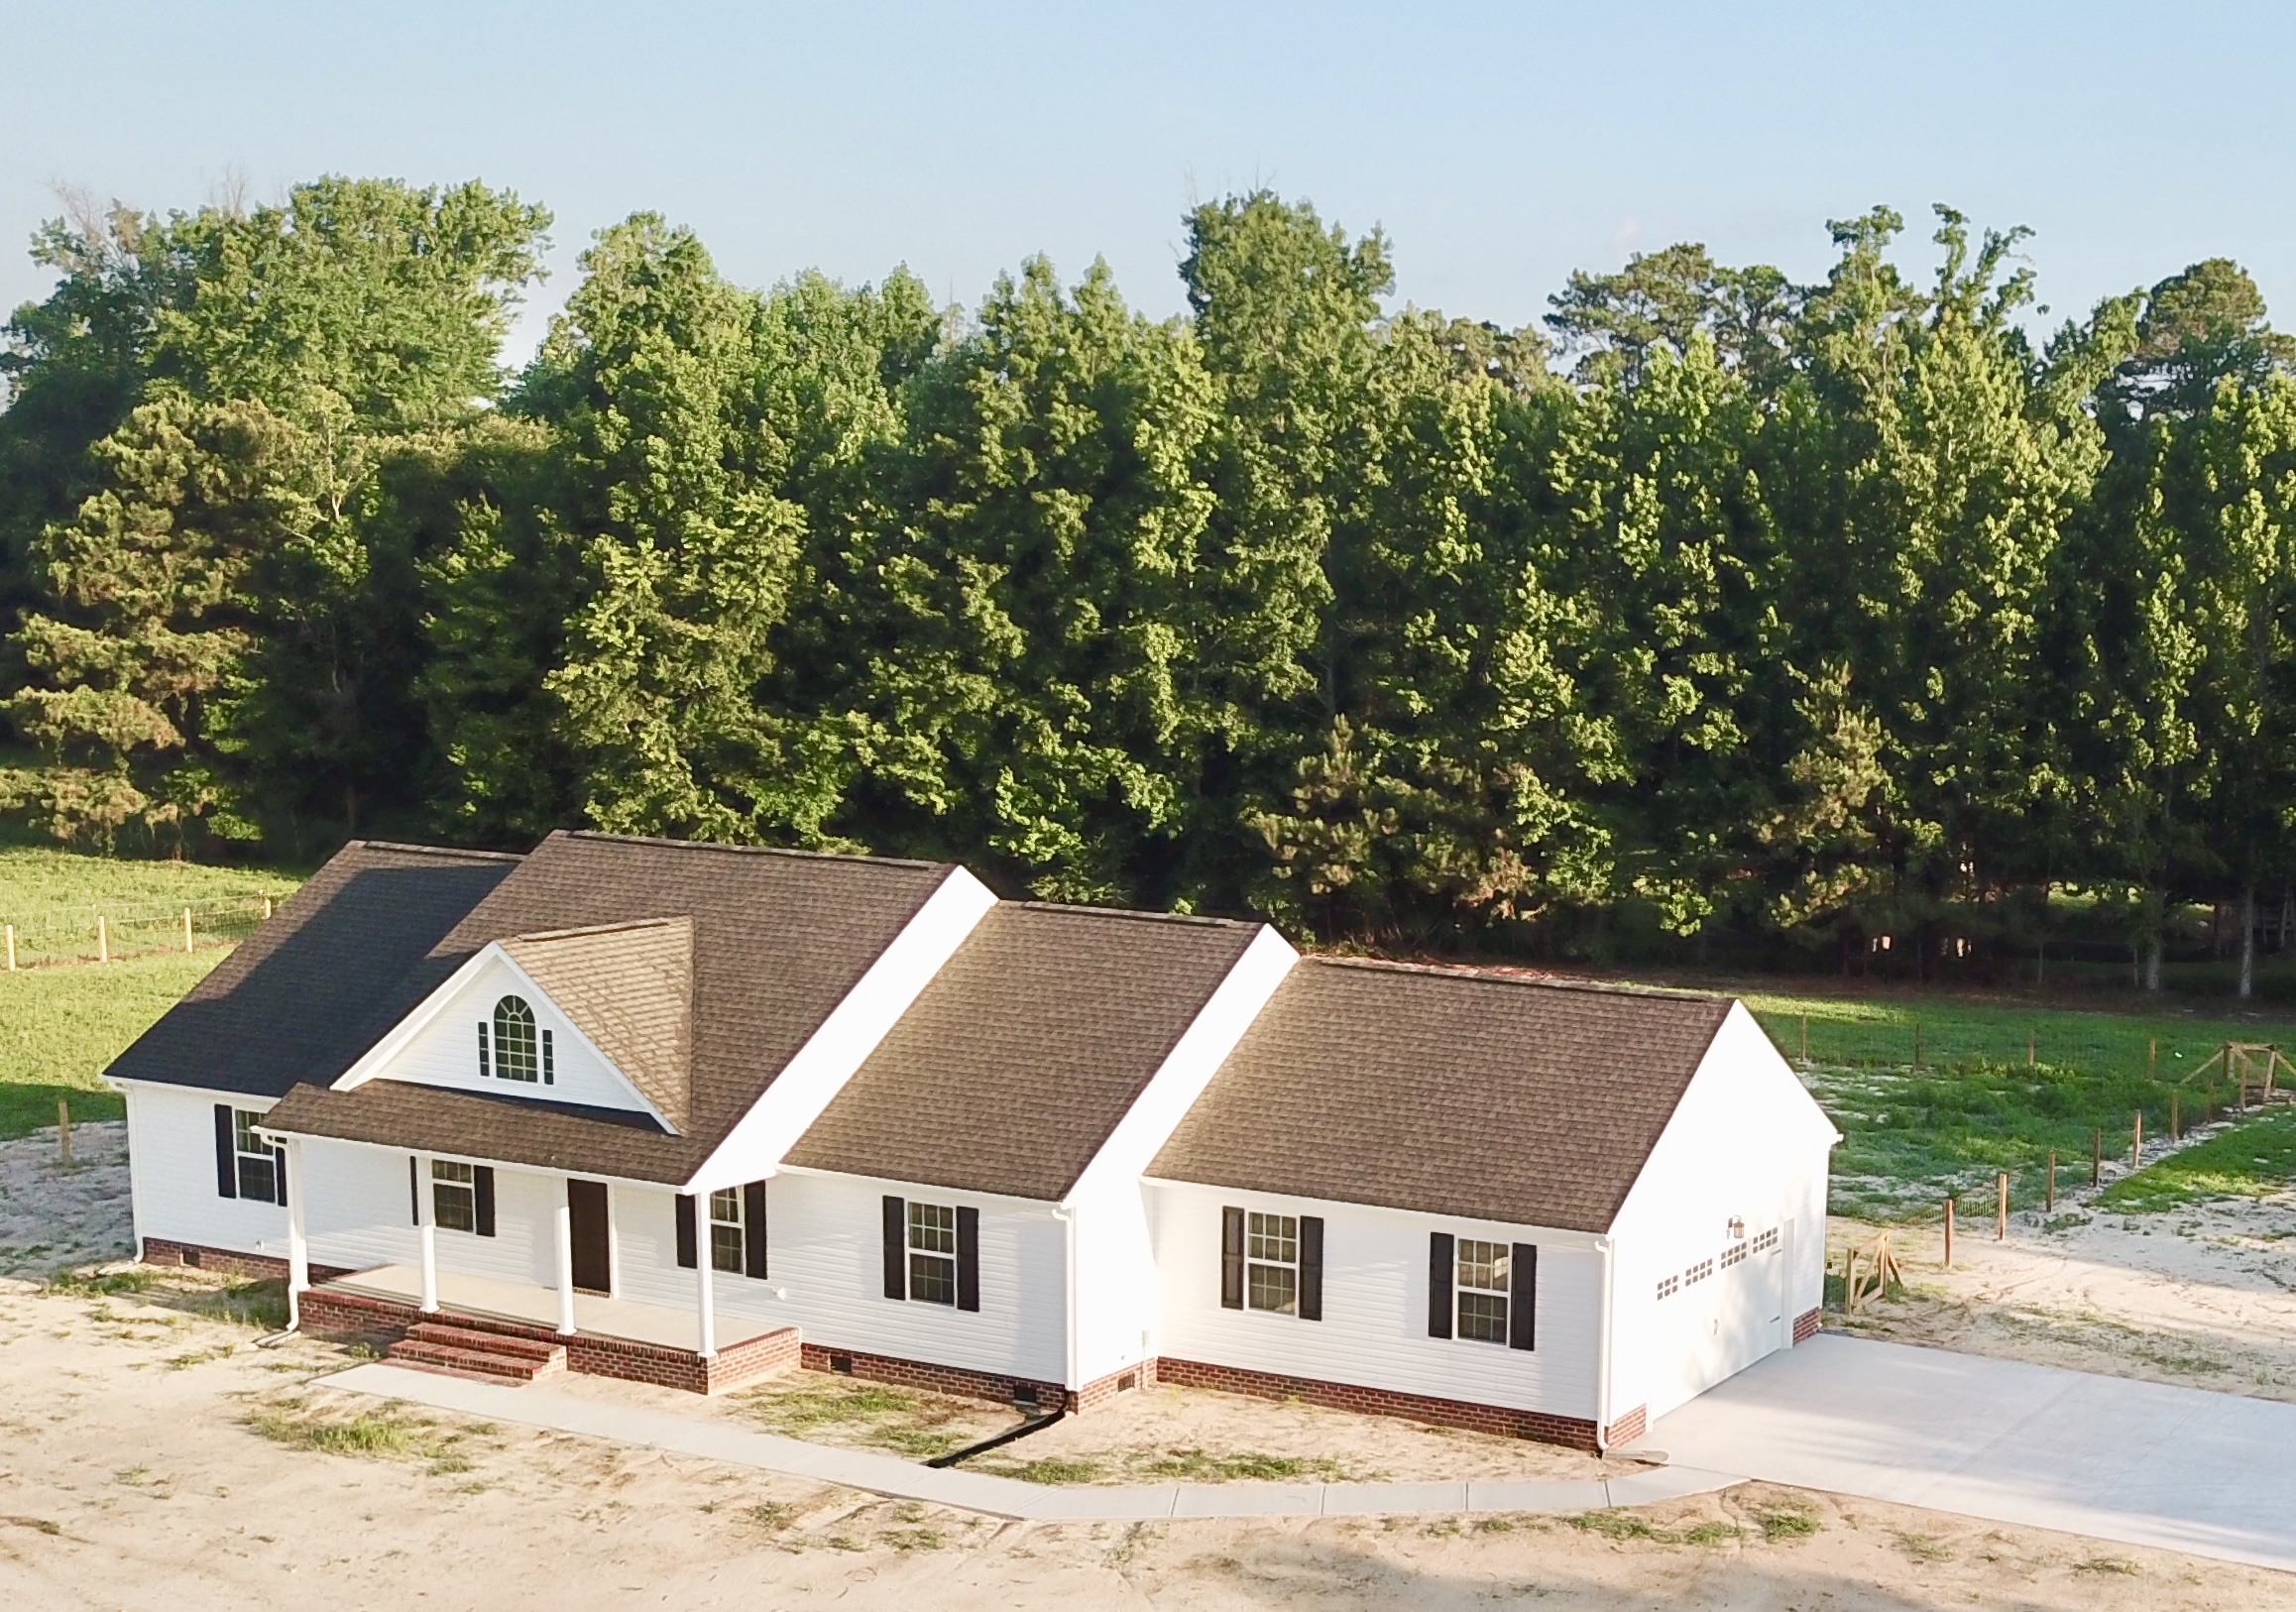 2382 CHERRY GROVE RD - NEW CONSTRUCTION ON 7;55 ACRES WITH A POND AND CUSTOM BARN